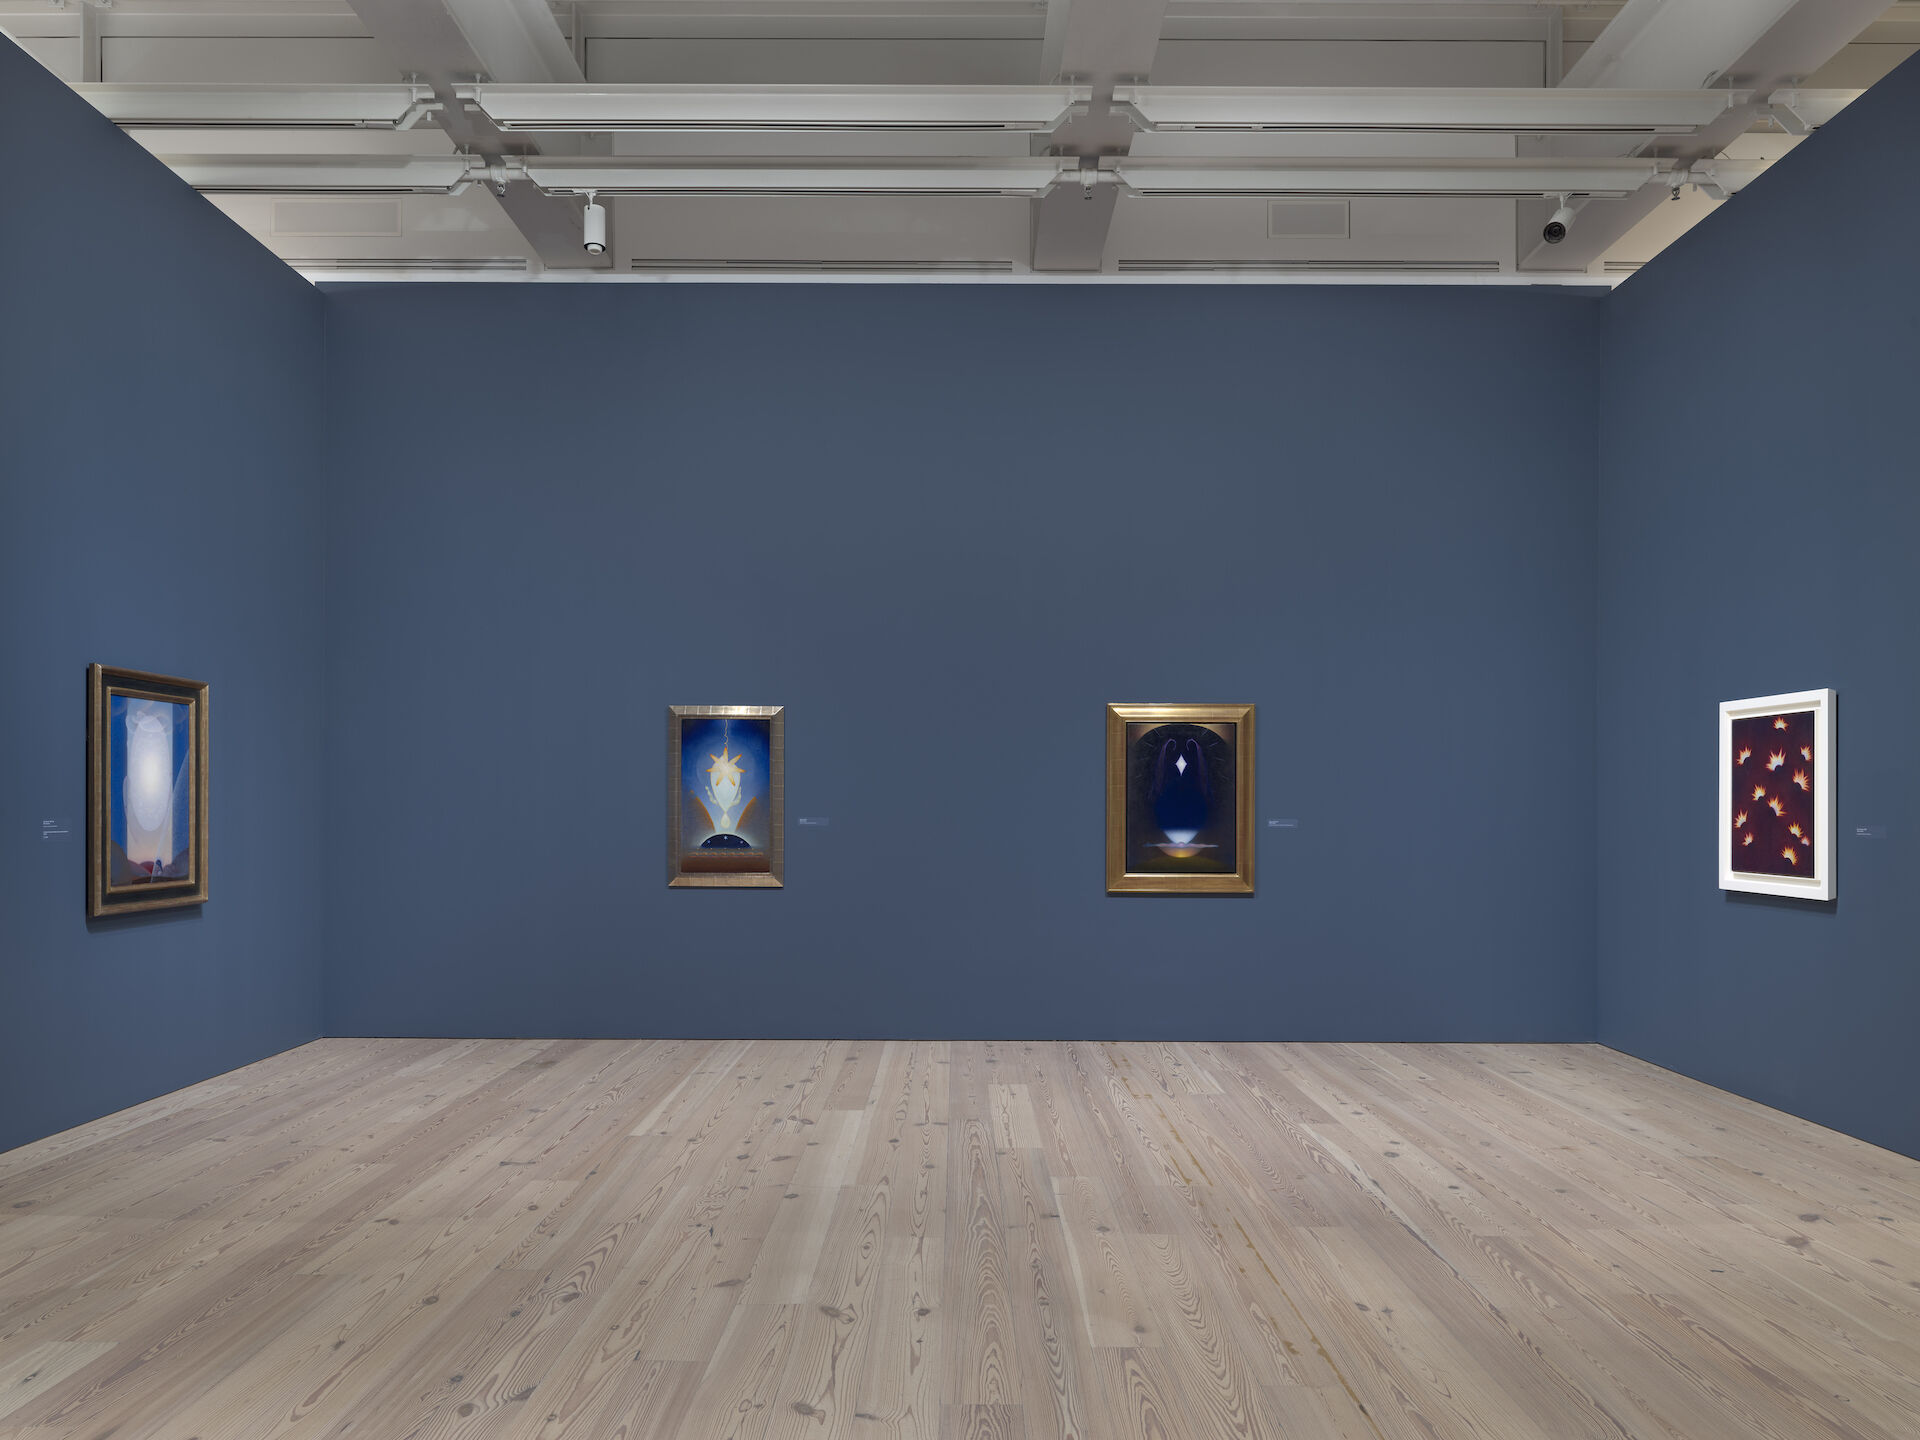 Looking into a blue room in the Whitney containing paintings by Agnes Pelton. From left to right: Light Center, 1947-48; Birthday, 1943; Alchemy, 1937-39; Fires in Space, 1938.